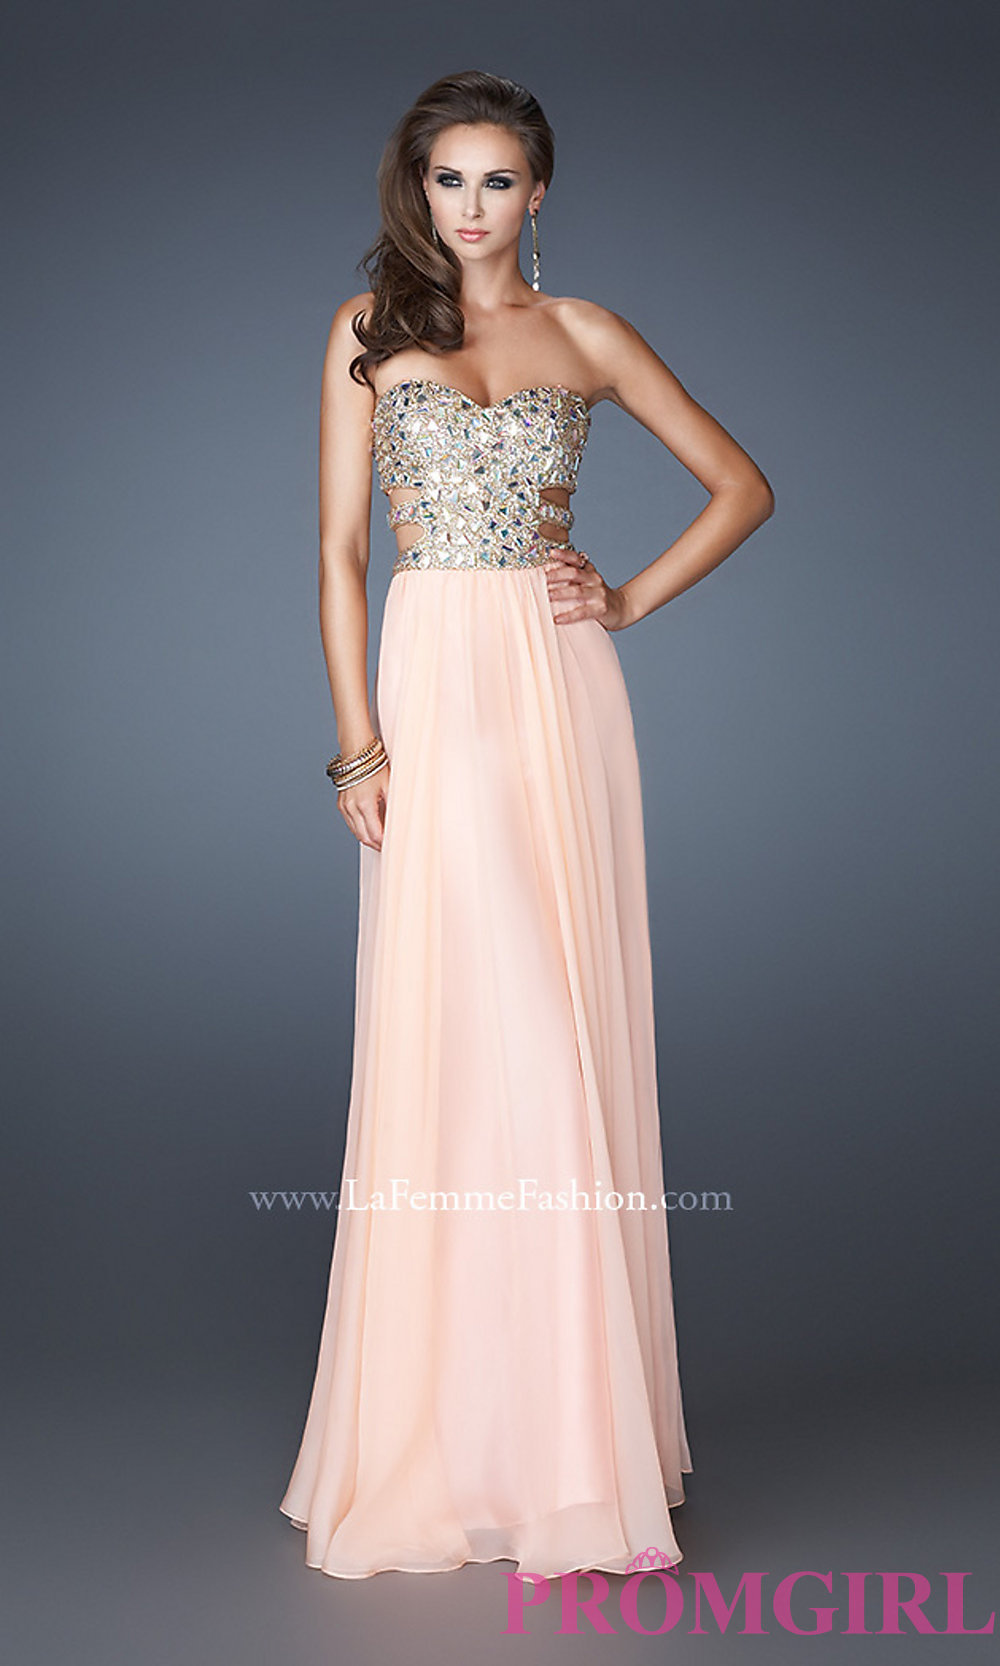 Cut out prom gown by la femme 18602